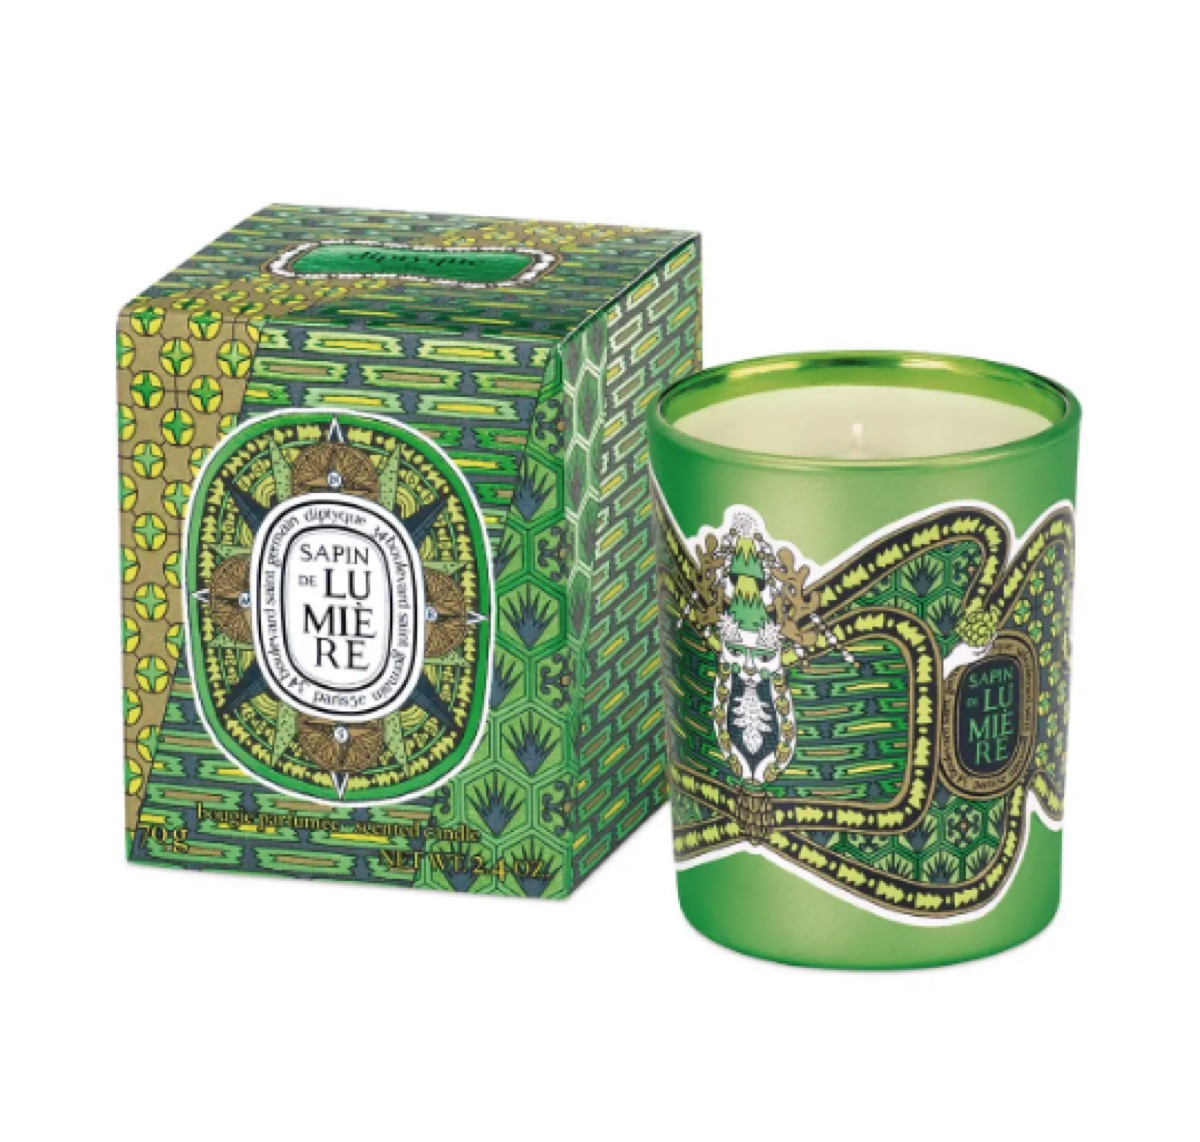 Diptyque Sapin Christmas Candle buy after holidays